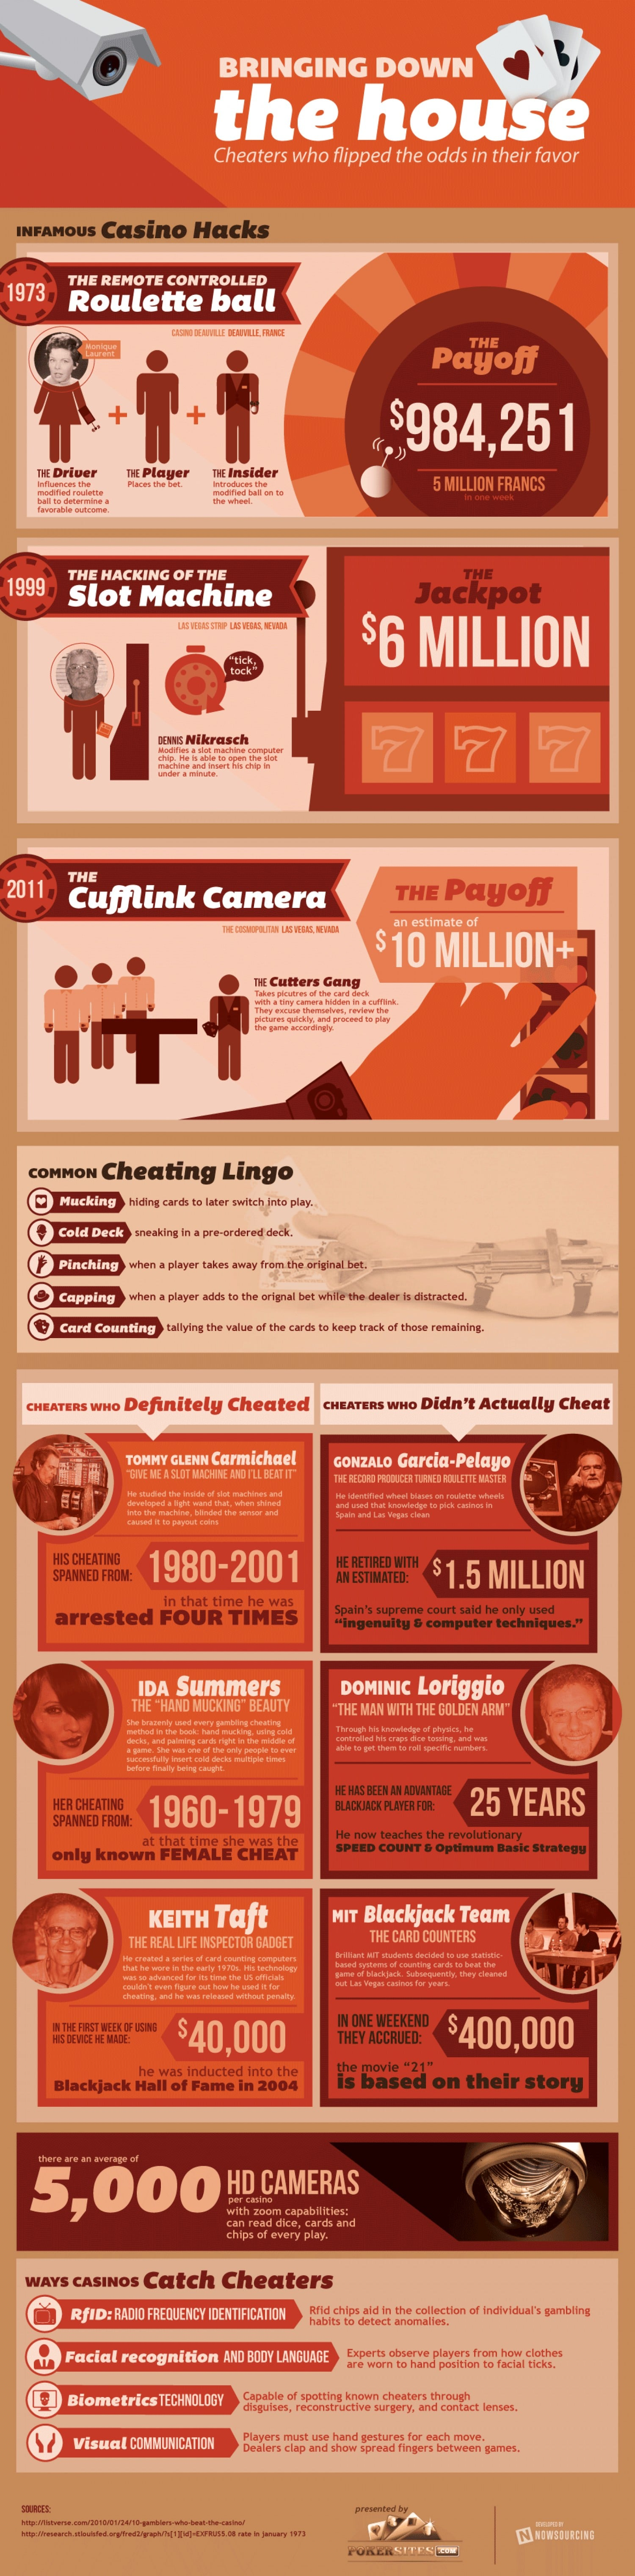 Casino Heroes – Casino Hacks That Brought Down The House [Infographic]